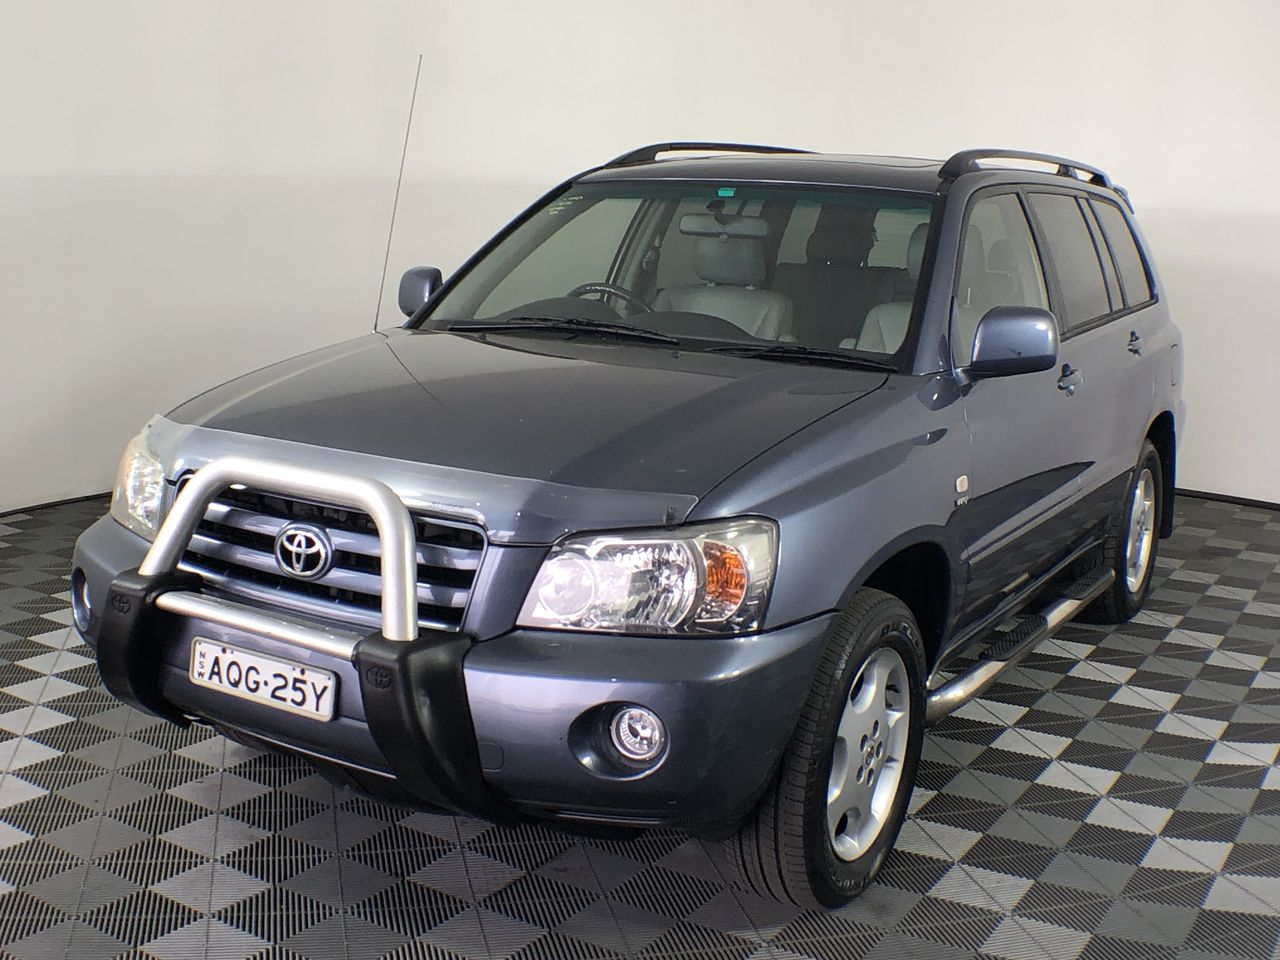 2004 Toyota Kluger Grande (4x4) Automatic 7 Seats Wagon